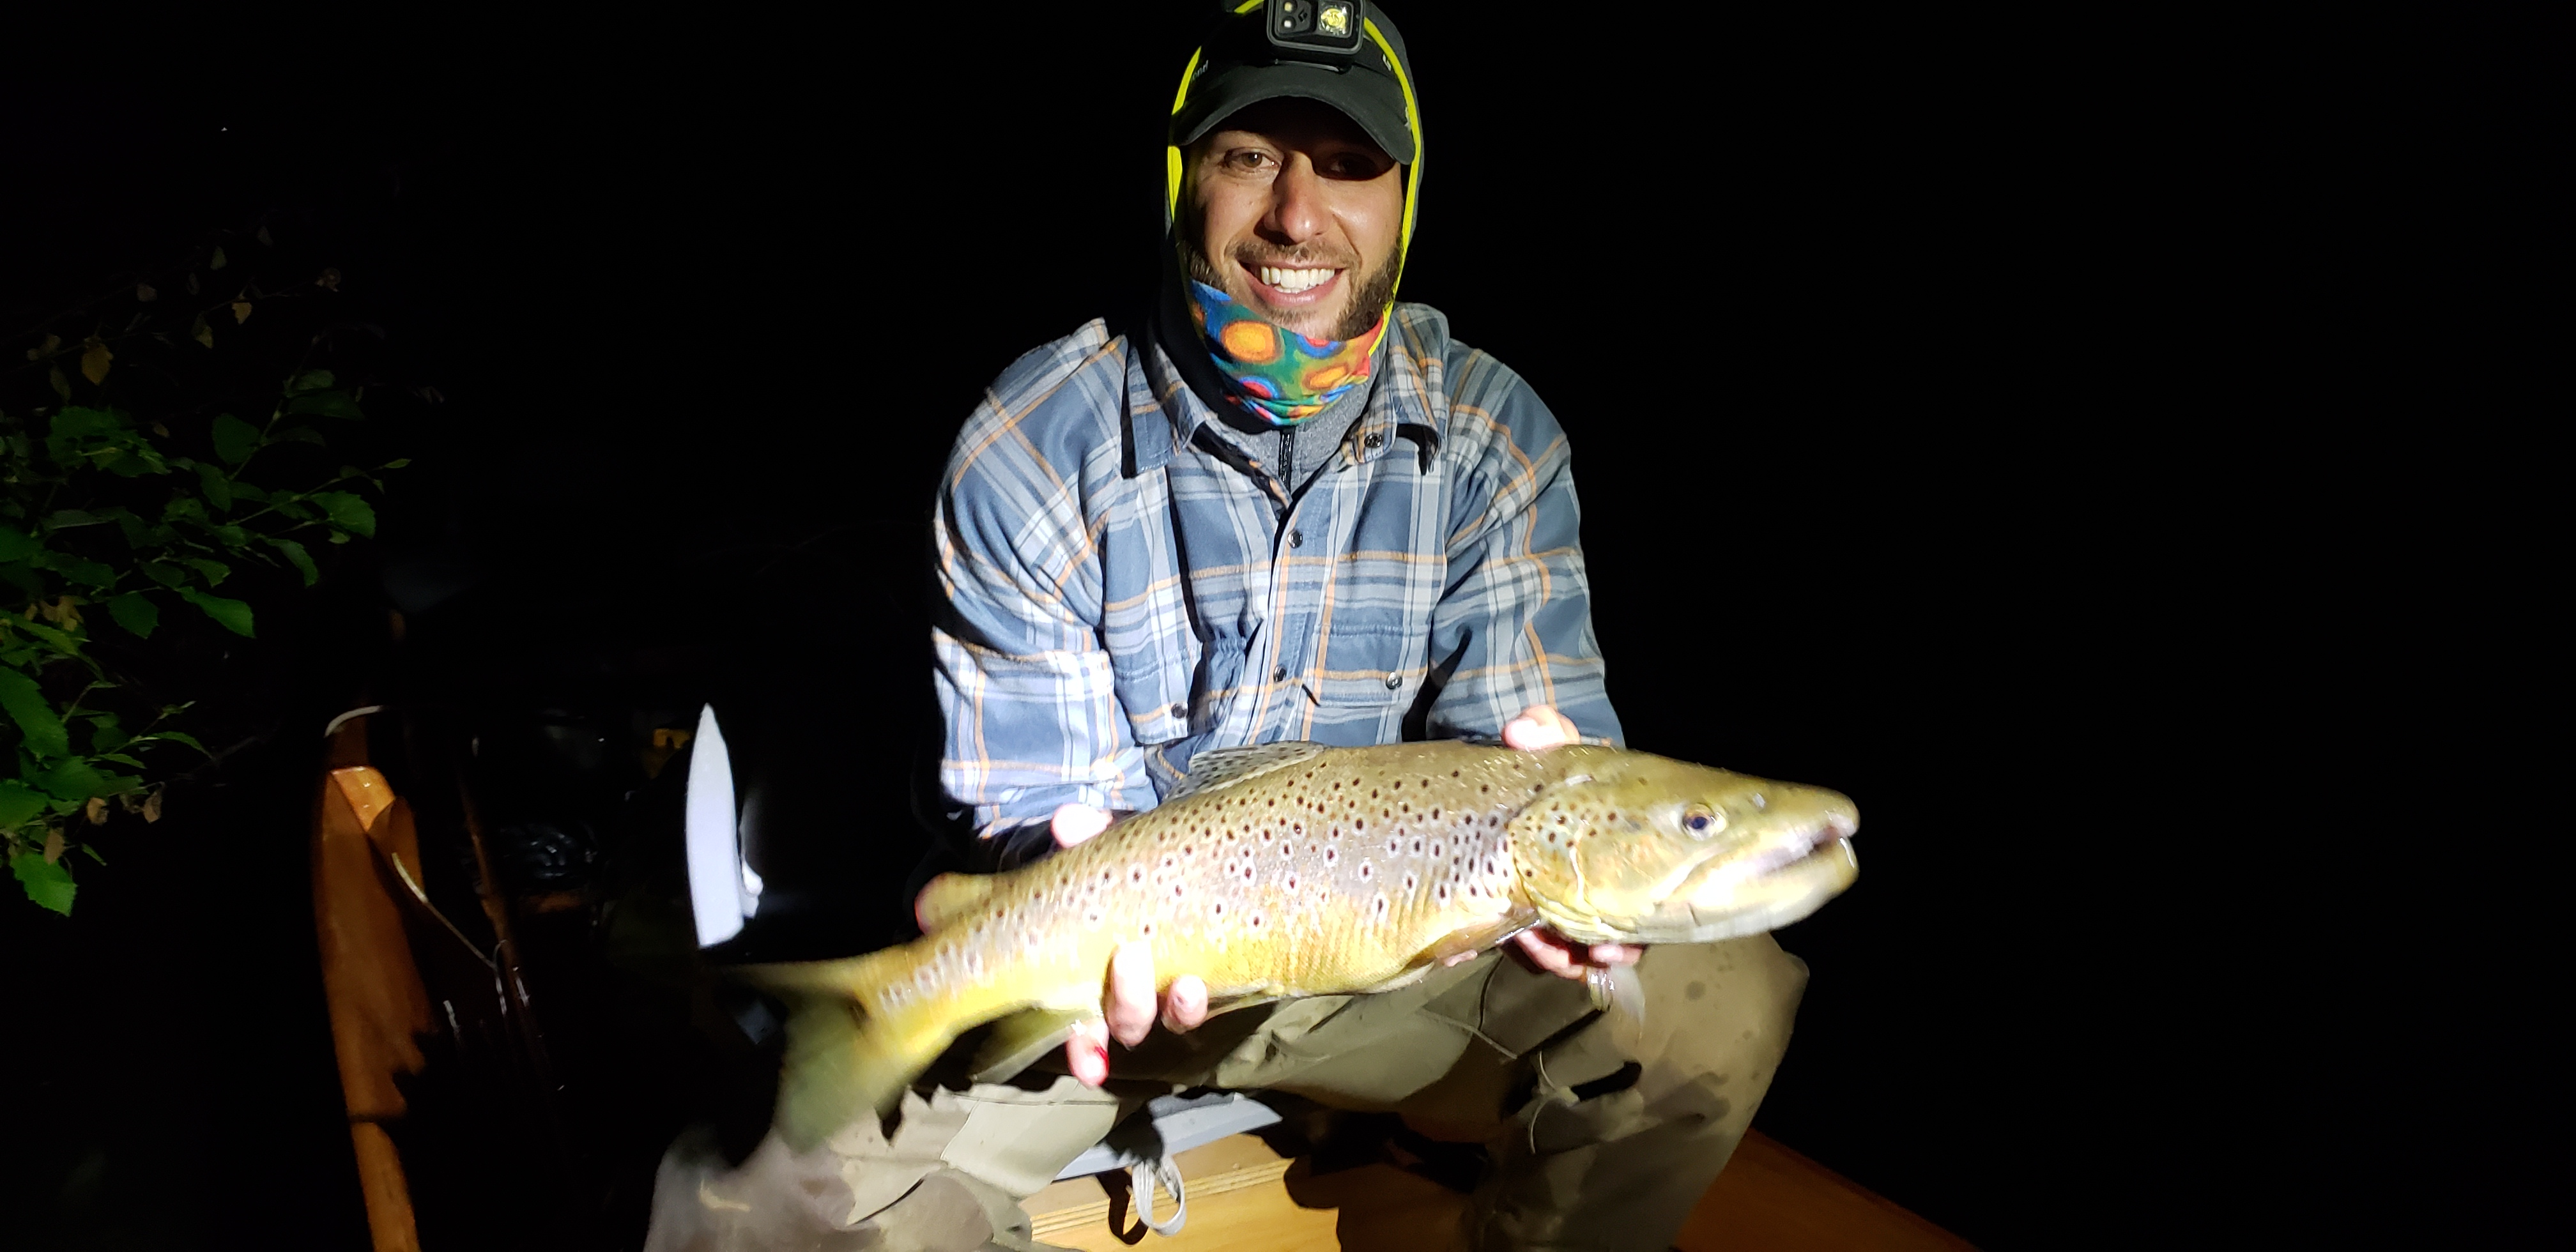 Fishing Report 6 25 18 | Ron's Fly Shop